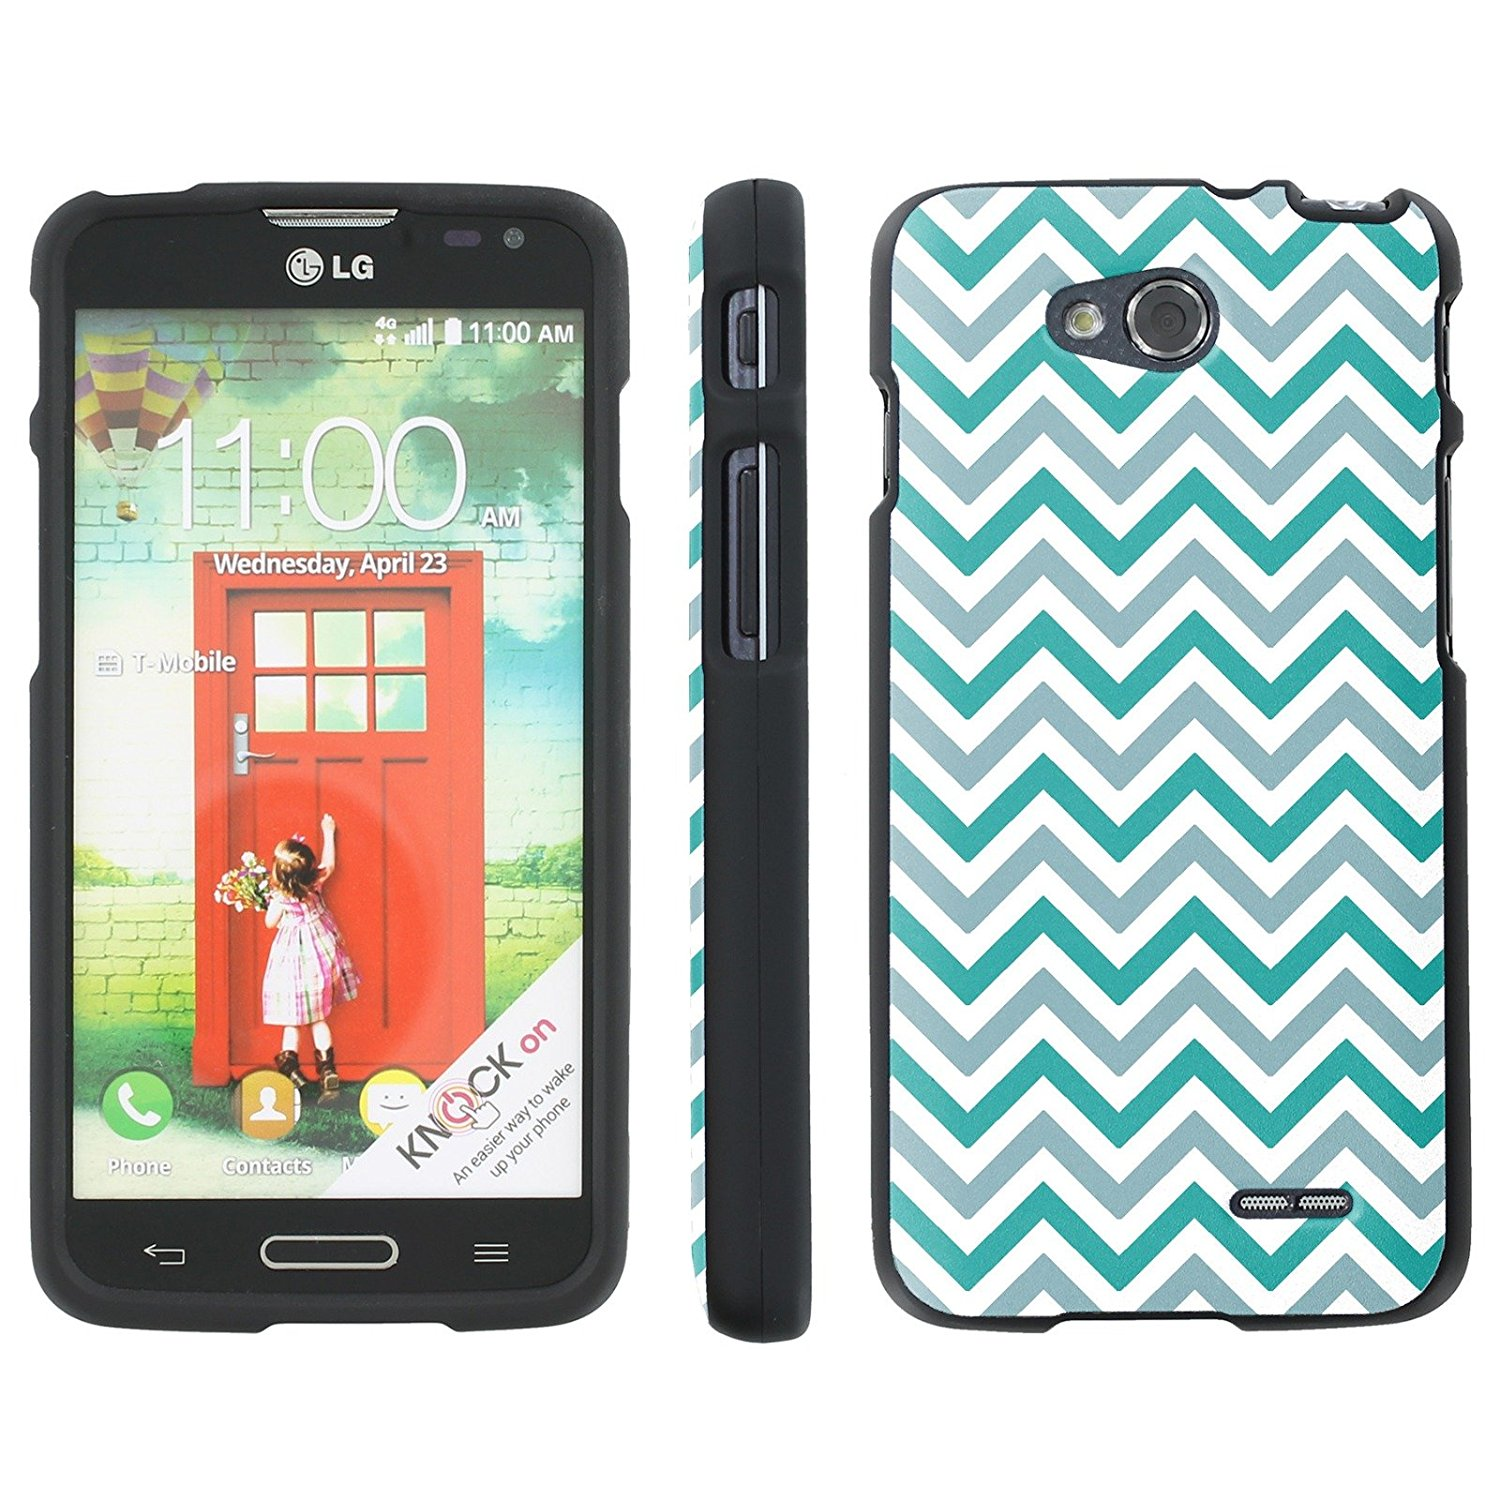 Mobiflare Slim Guard Armor Design Case for [LG Optimus L90 D415] - Chevron Mint and Gray